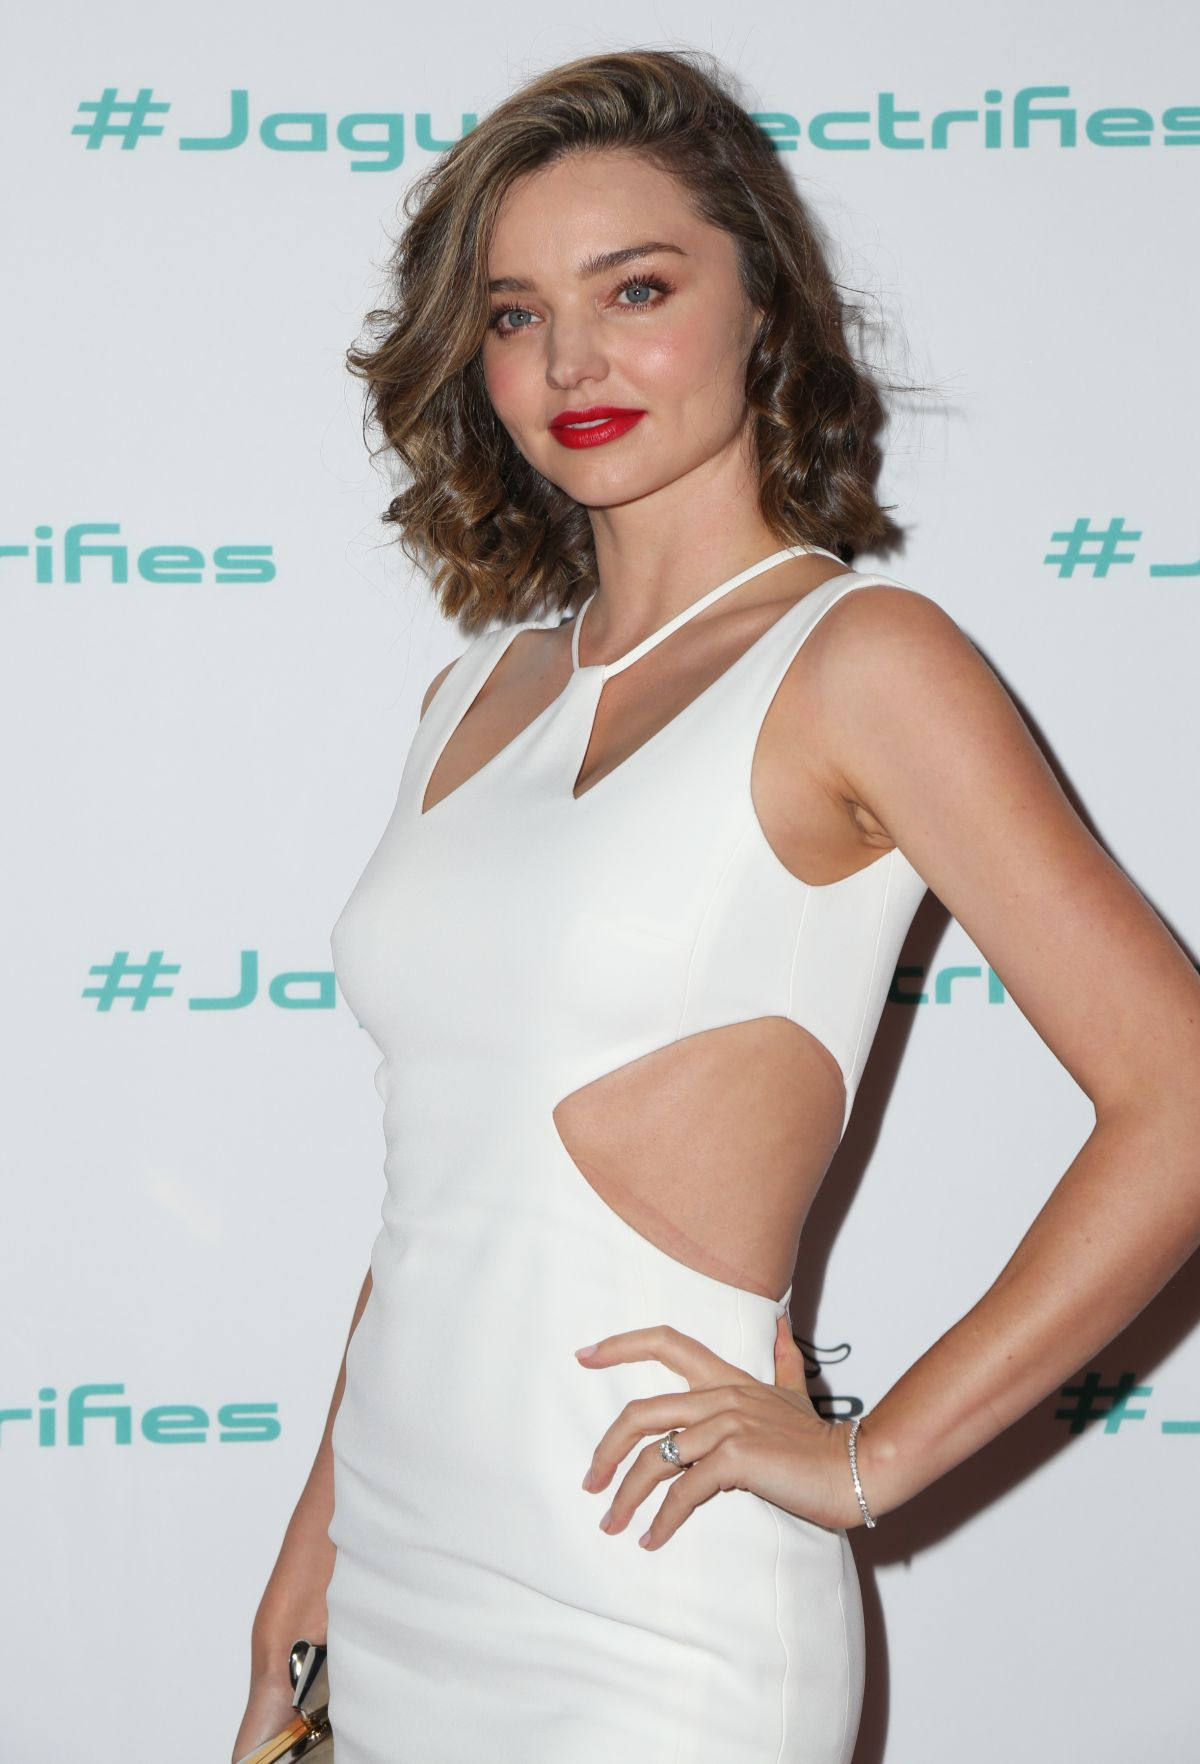 MIRANDA KERR at Jaguar for Next Era Vehicle Unveiling Event 11/14/2016